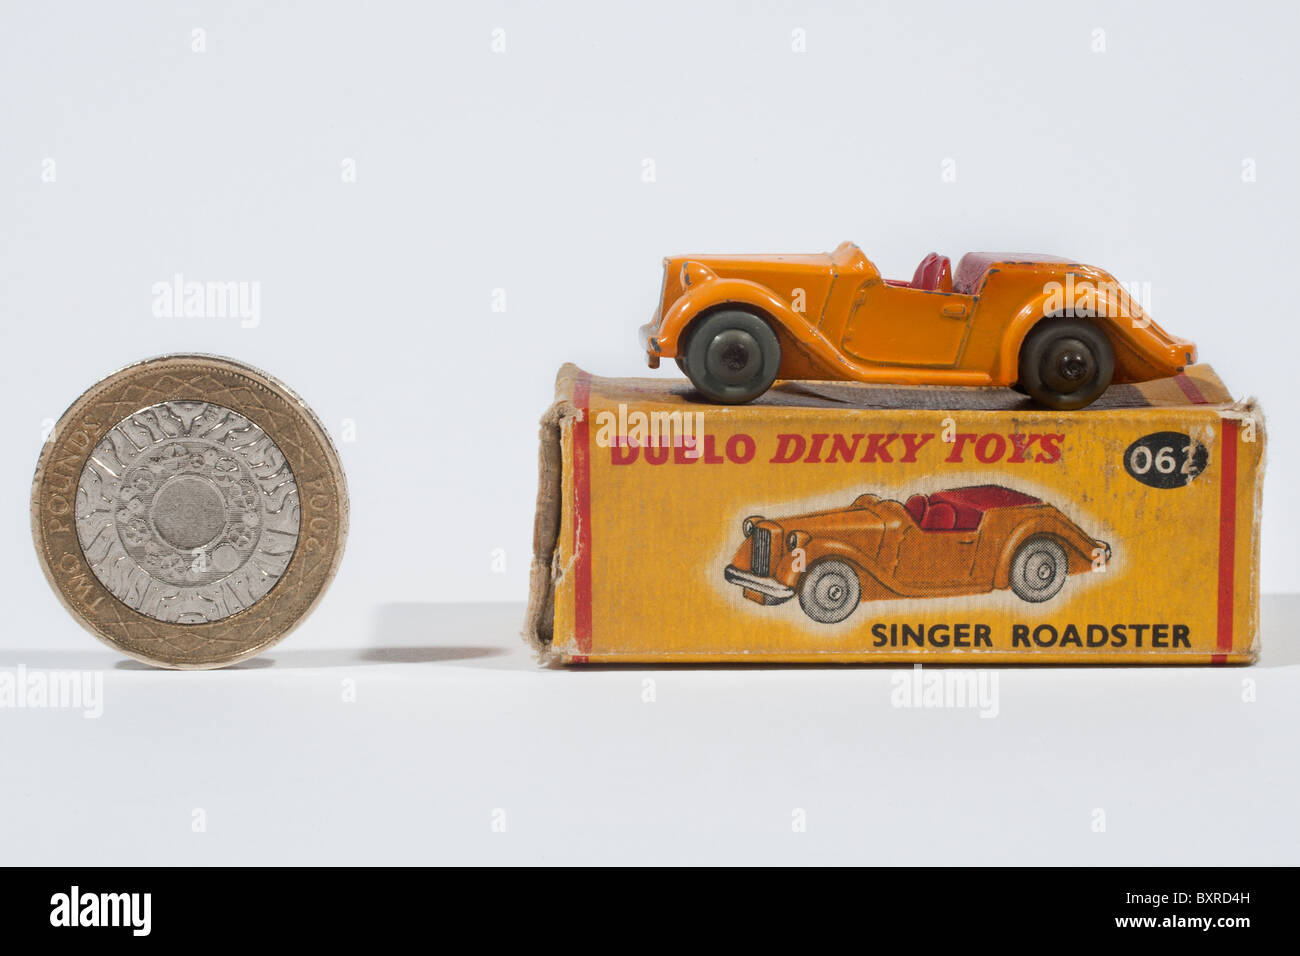 DINKY DUBLO 62 Singer Roadster and box with two pound coin to show scale - Stock Image